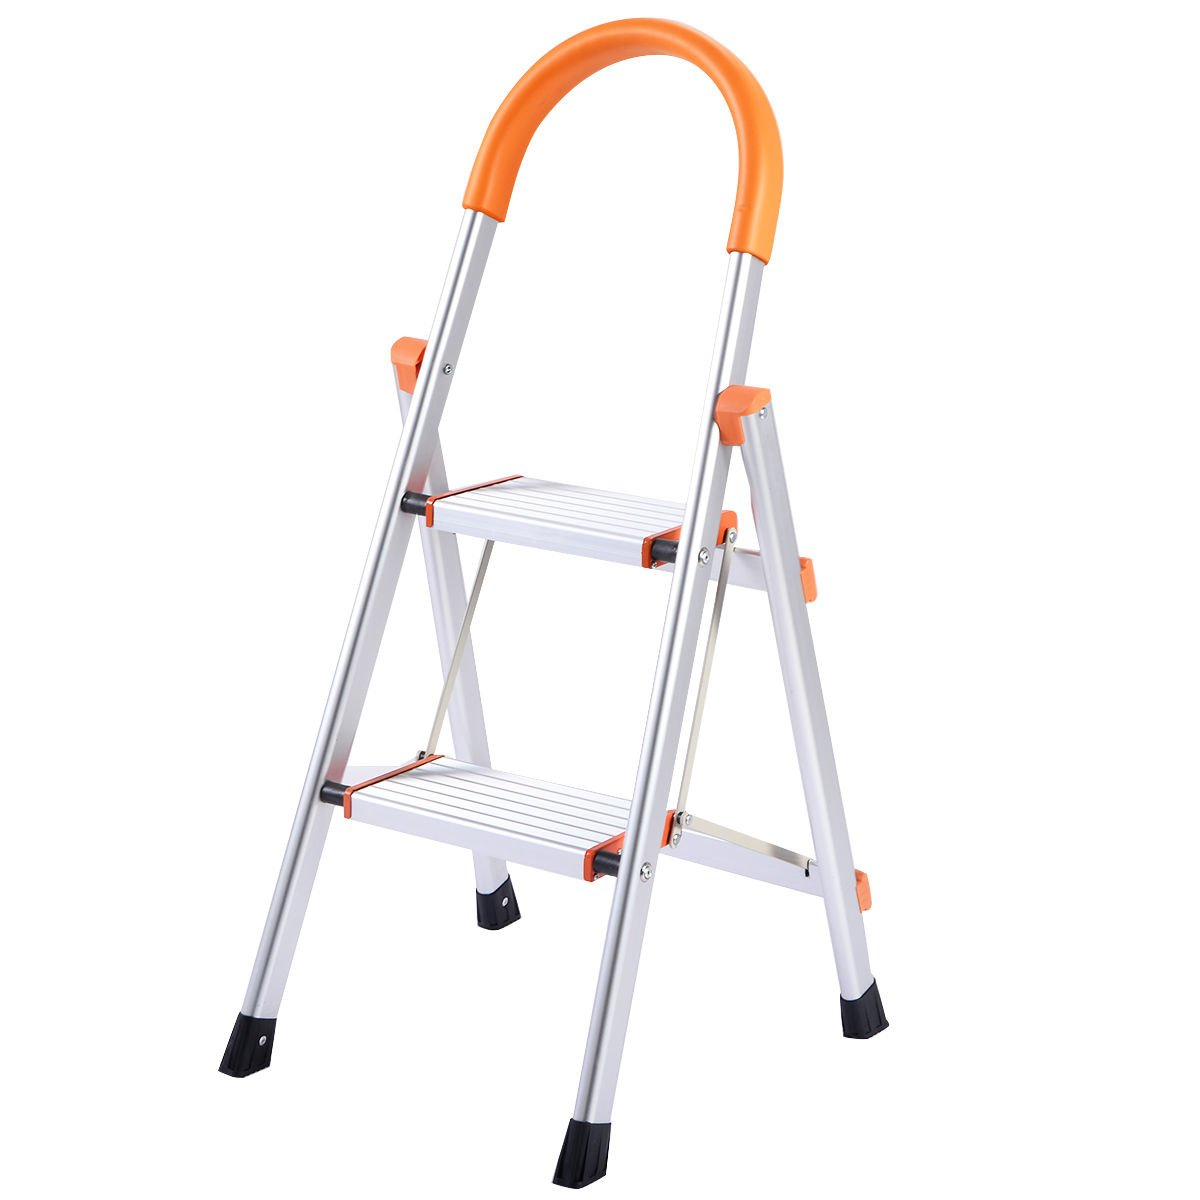 New Non-slip 3 Step Aluminum Ladder Folding Platform Stool 330 lbs Load Capacity